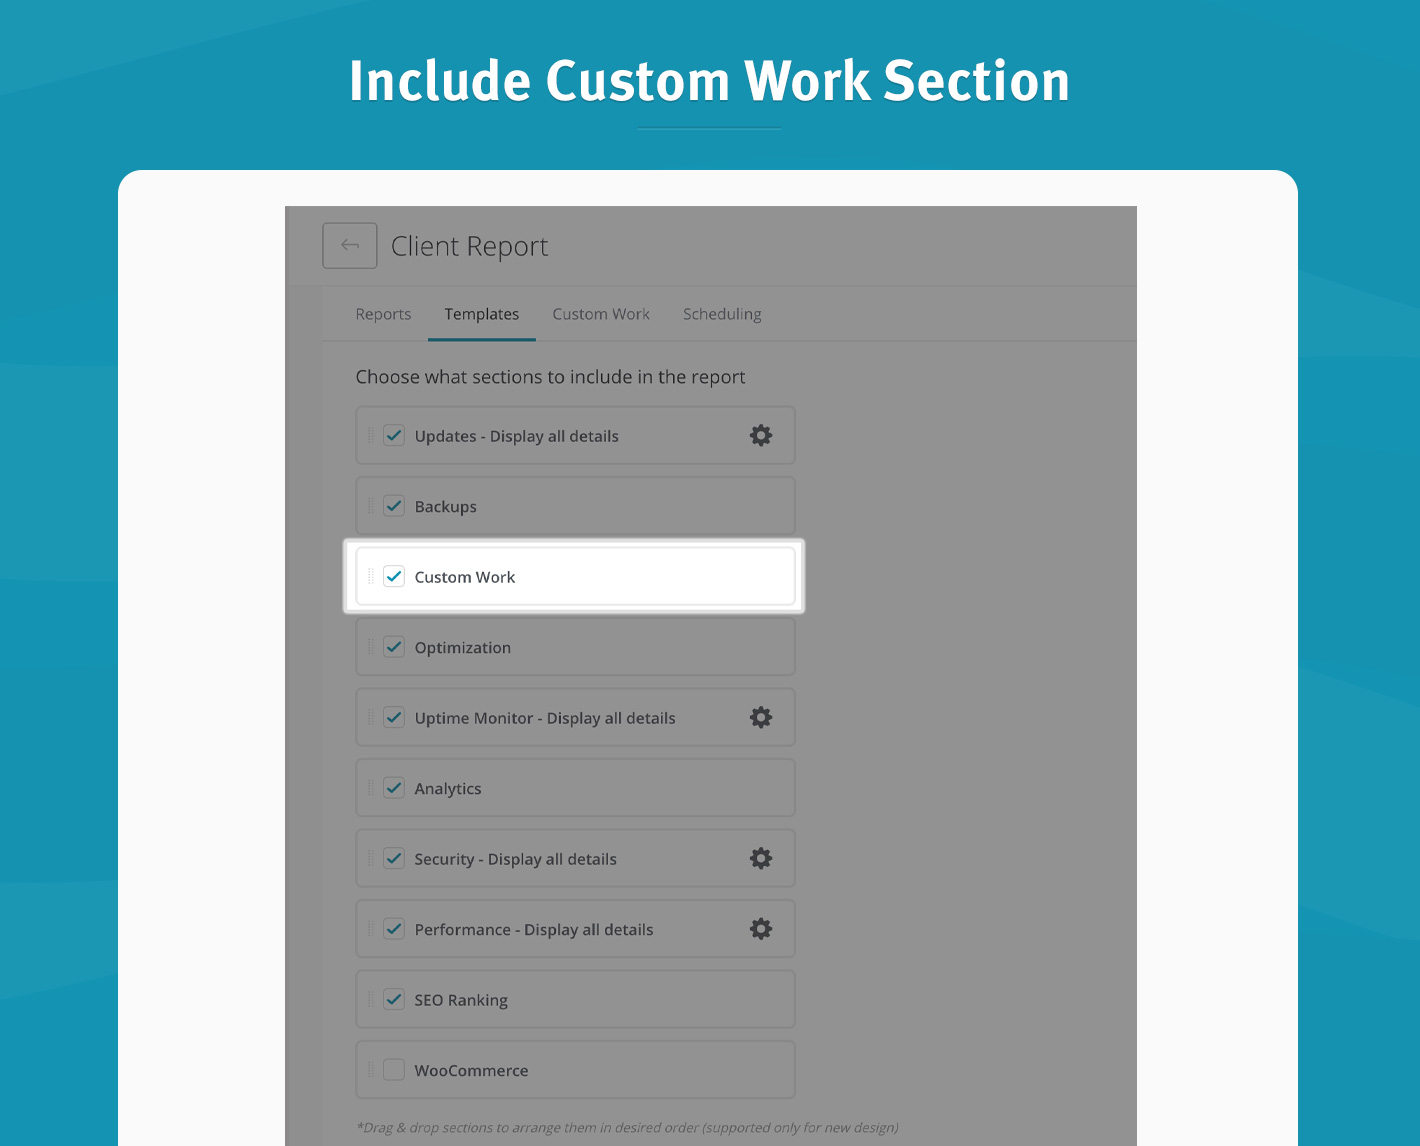 Include Custom Work Section